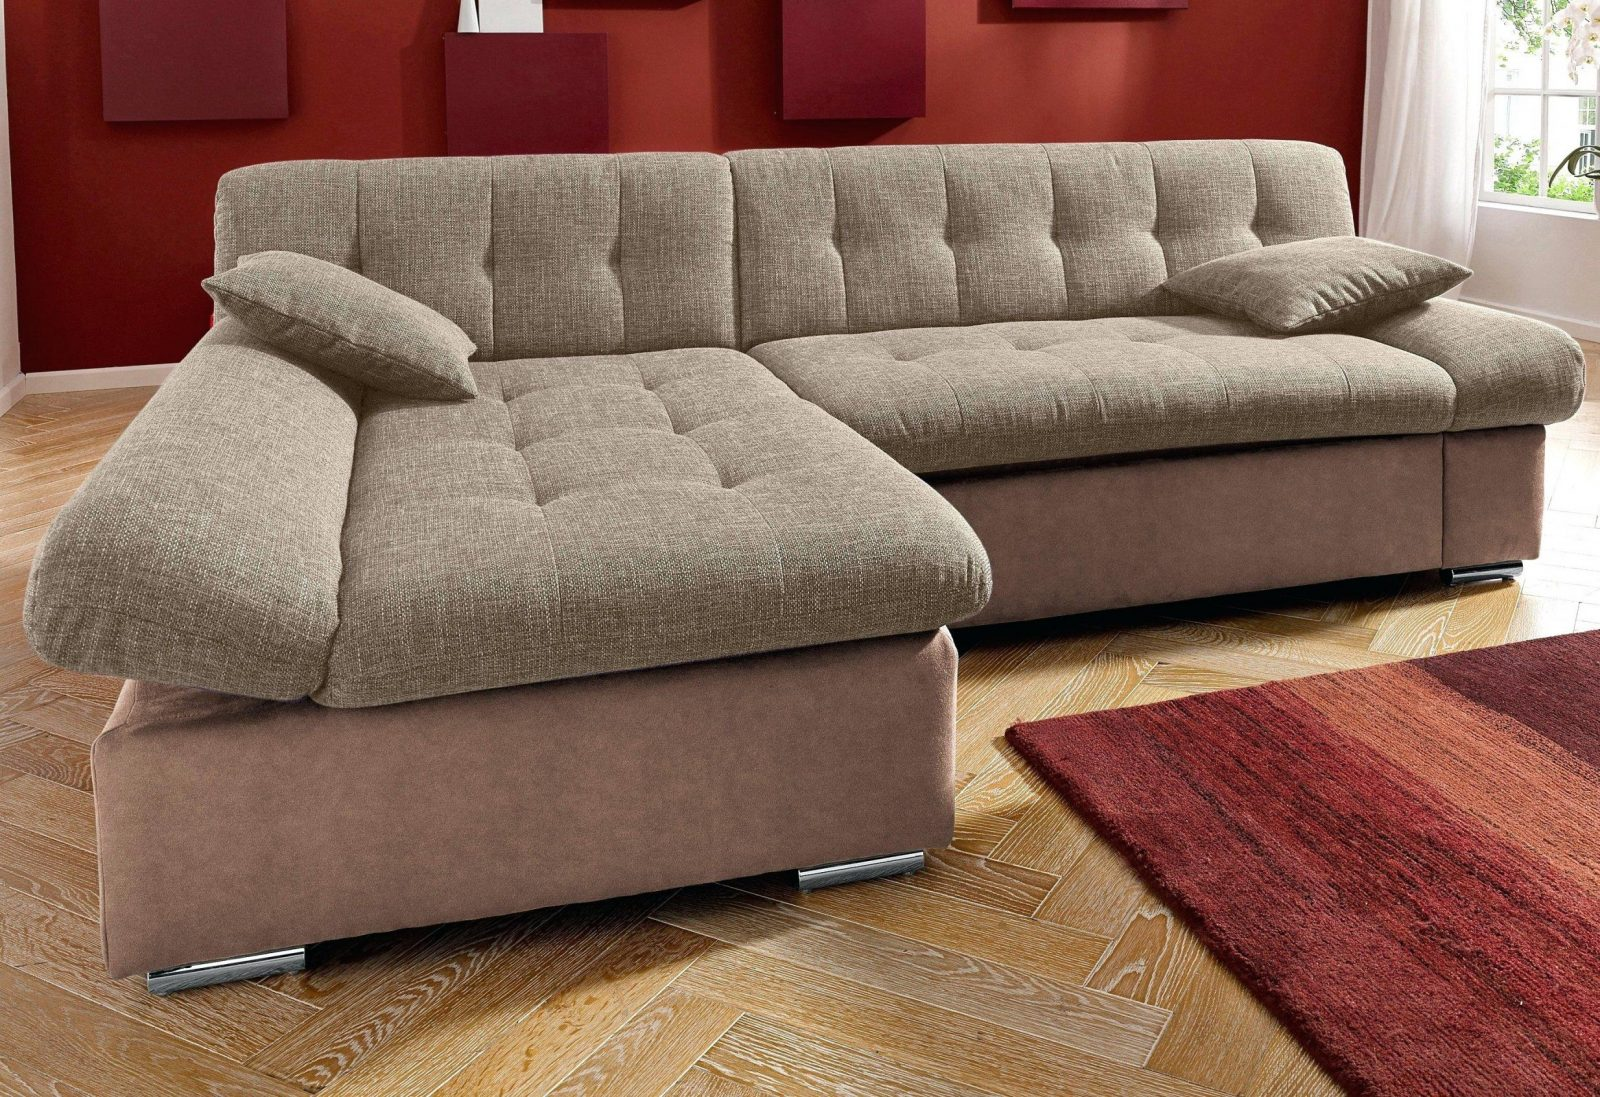 Otto Sofas Mit Bettfunktion Sofas Big Sofa Otto Sofas Mit von Otto Sofas Mit Bettfunktion Photo